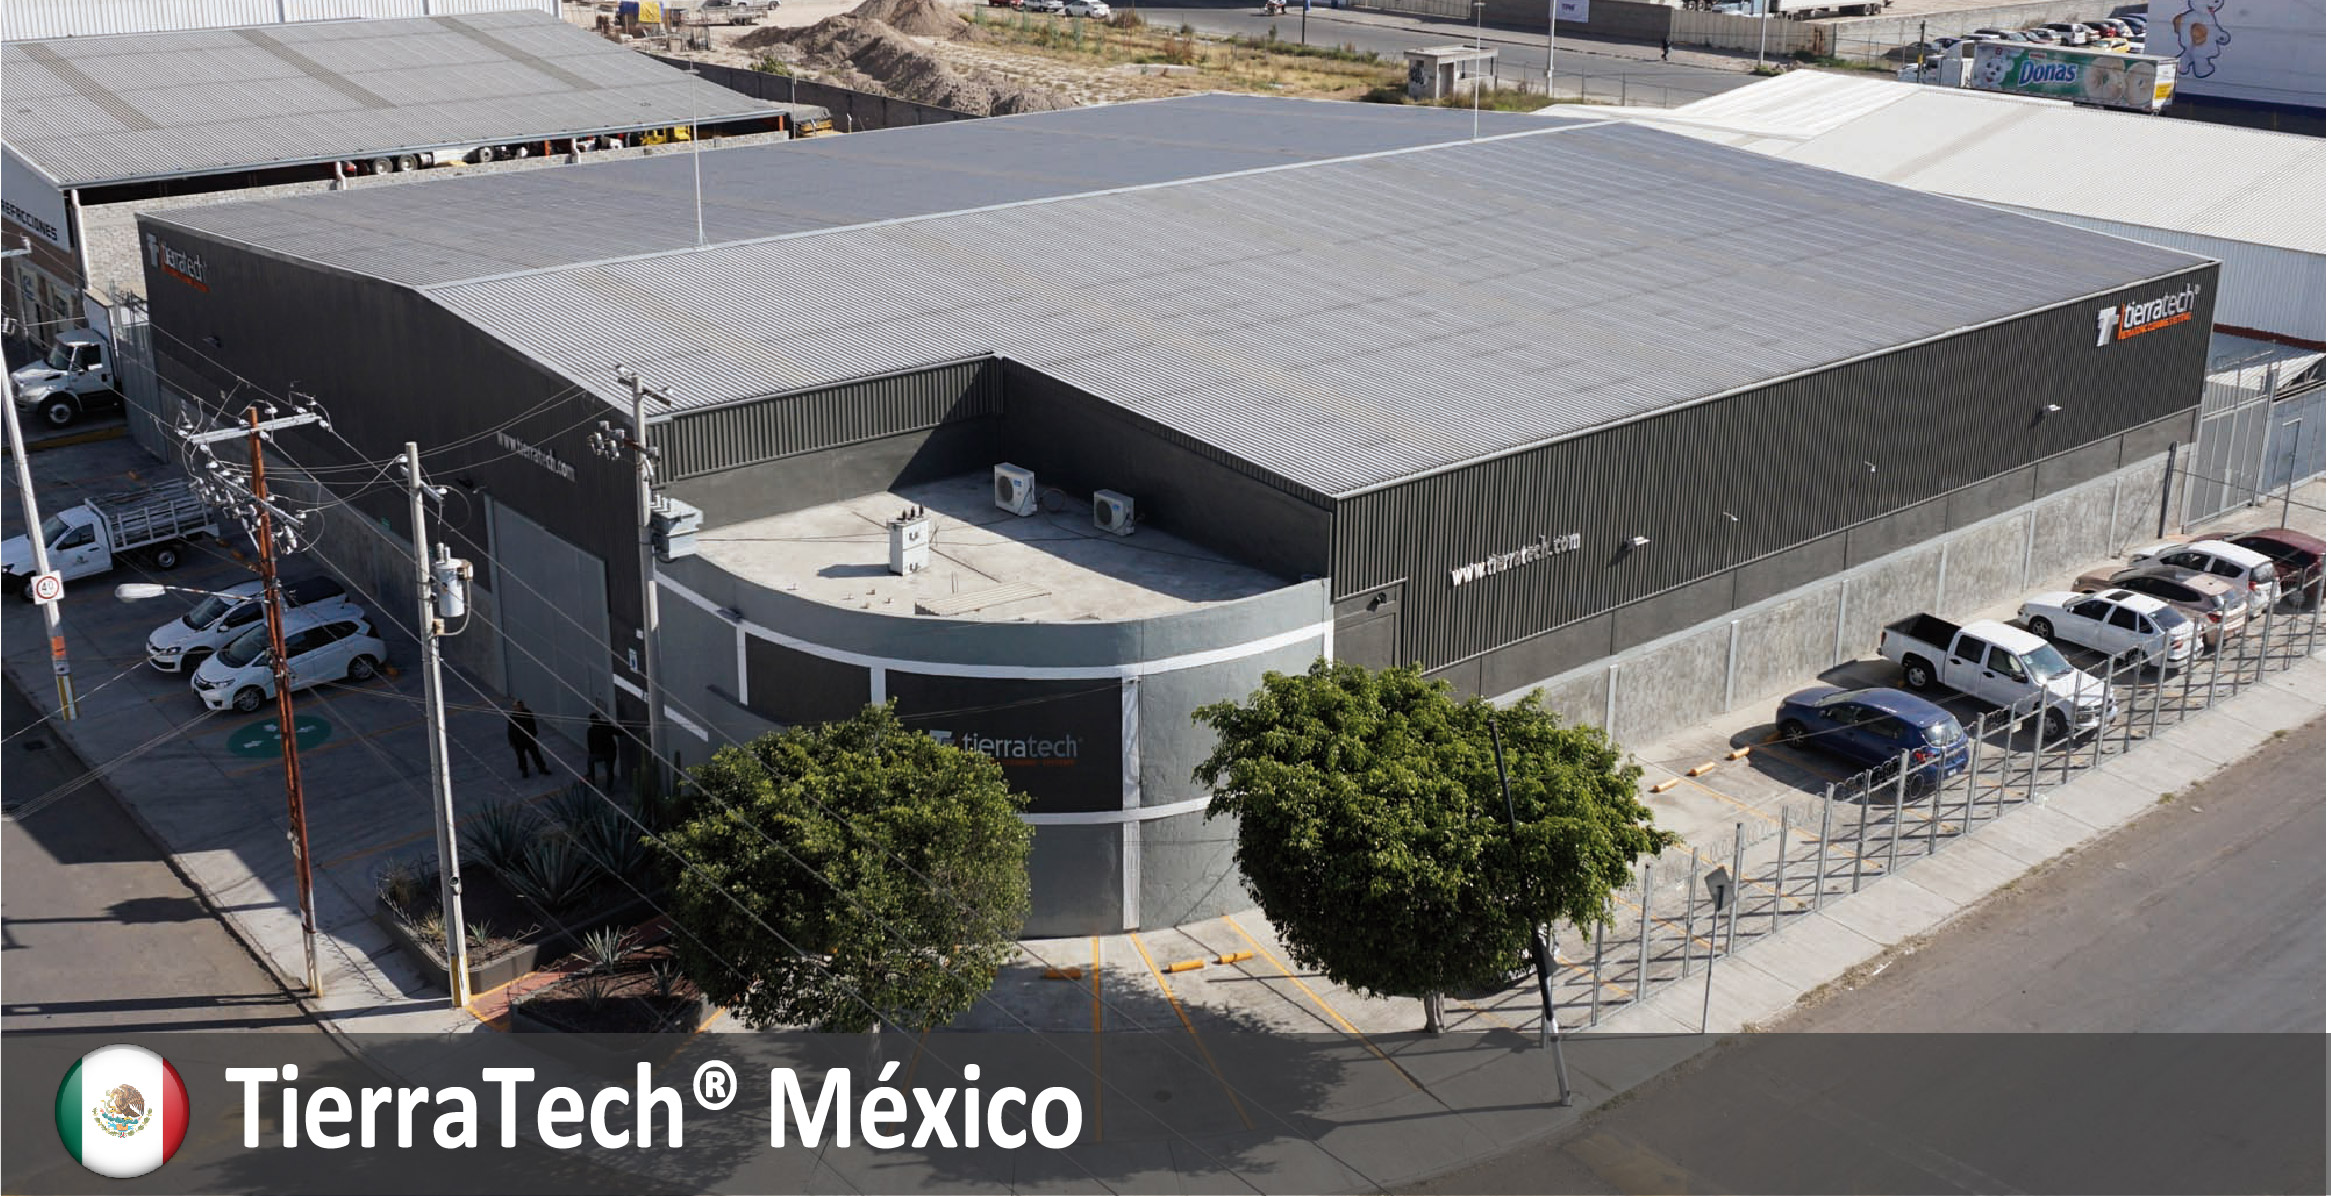 Tierratech® Mexico